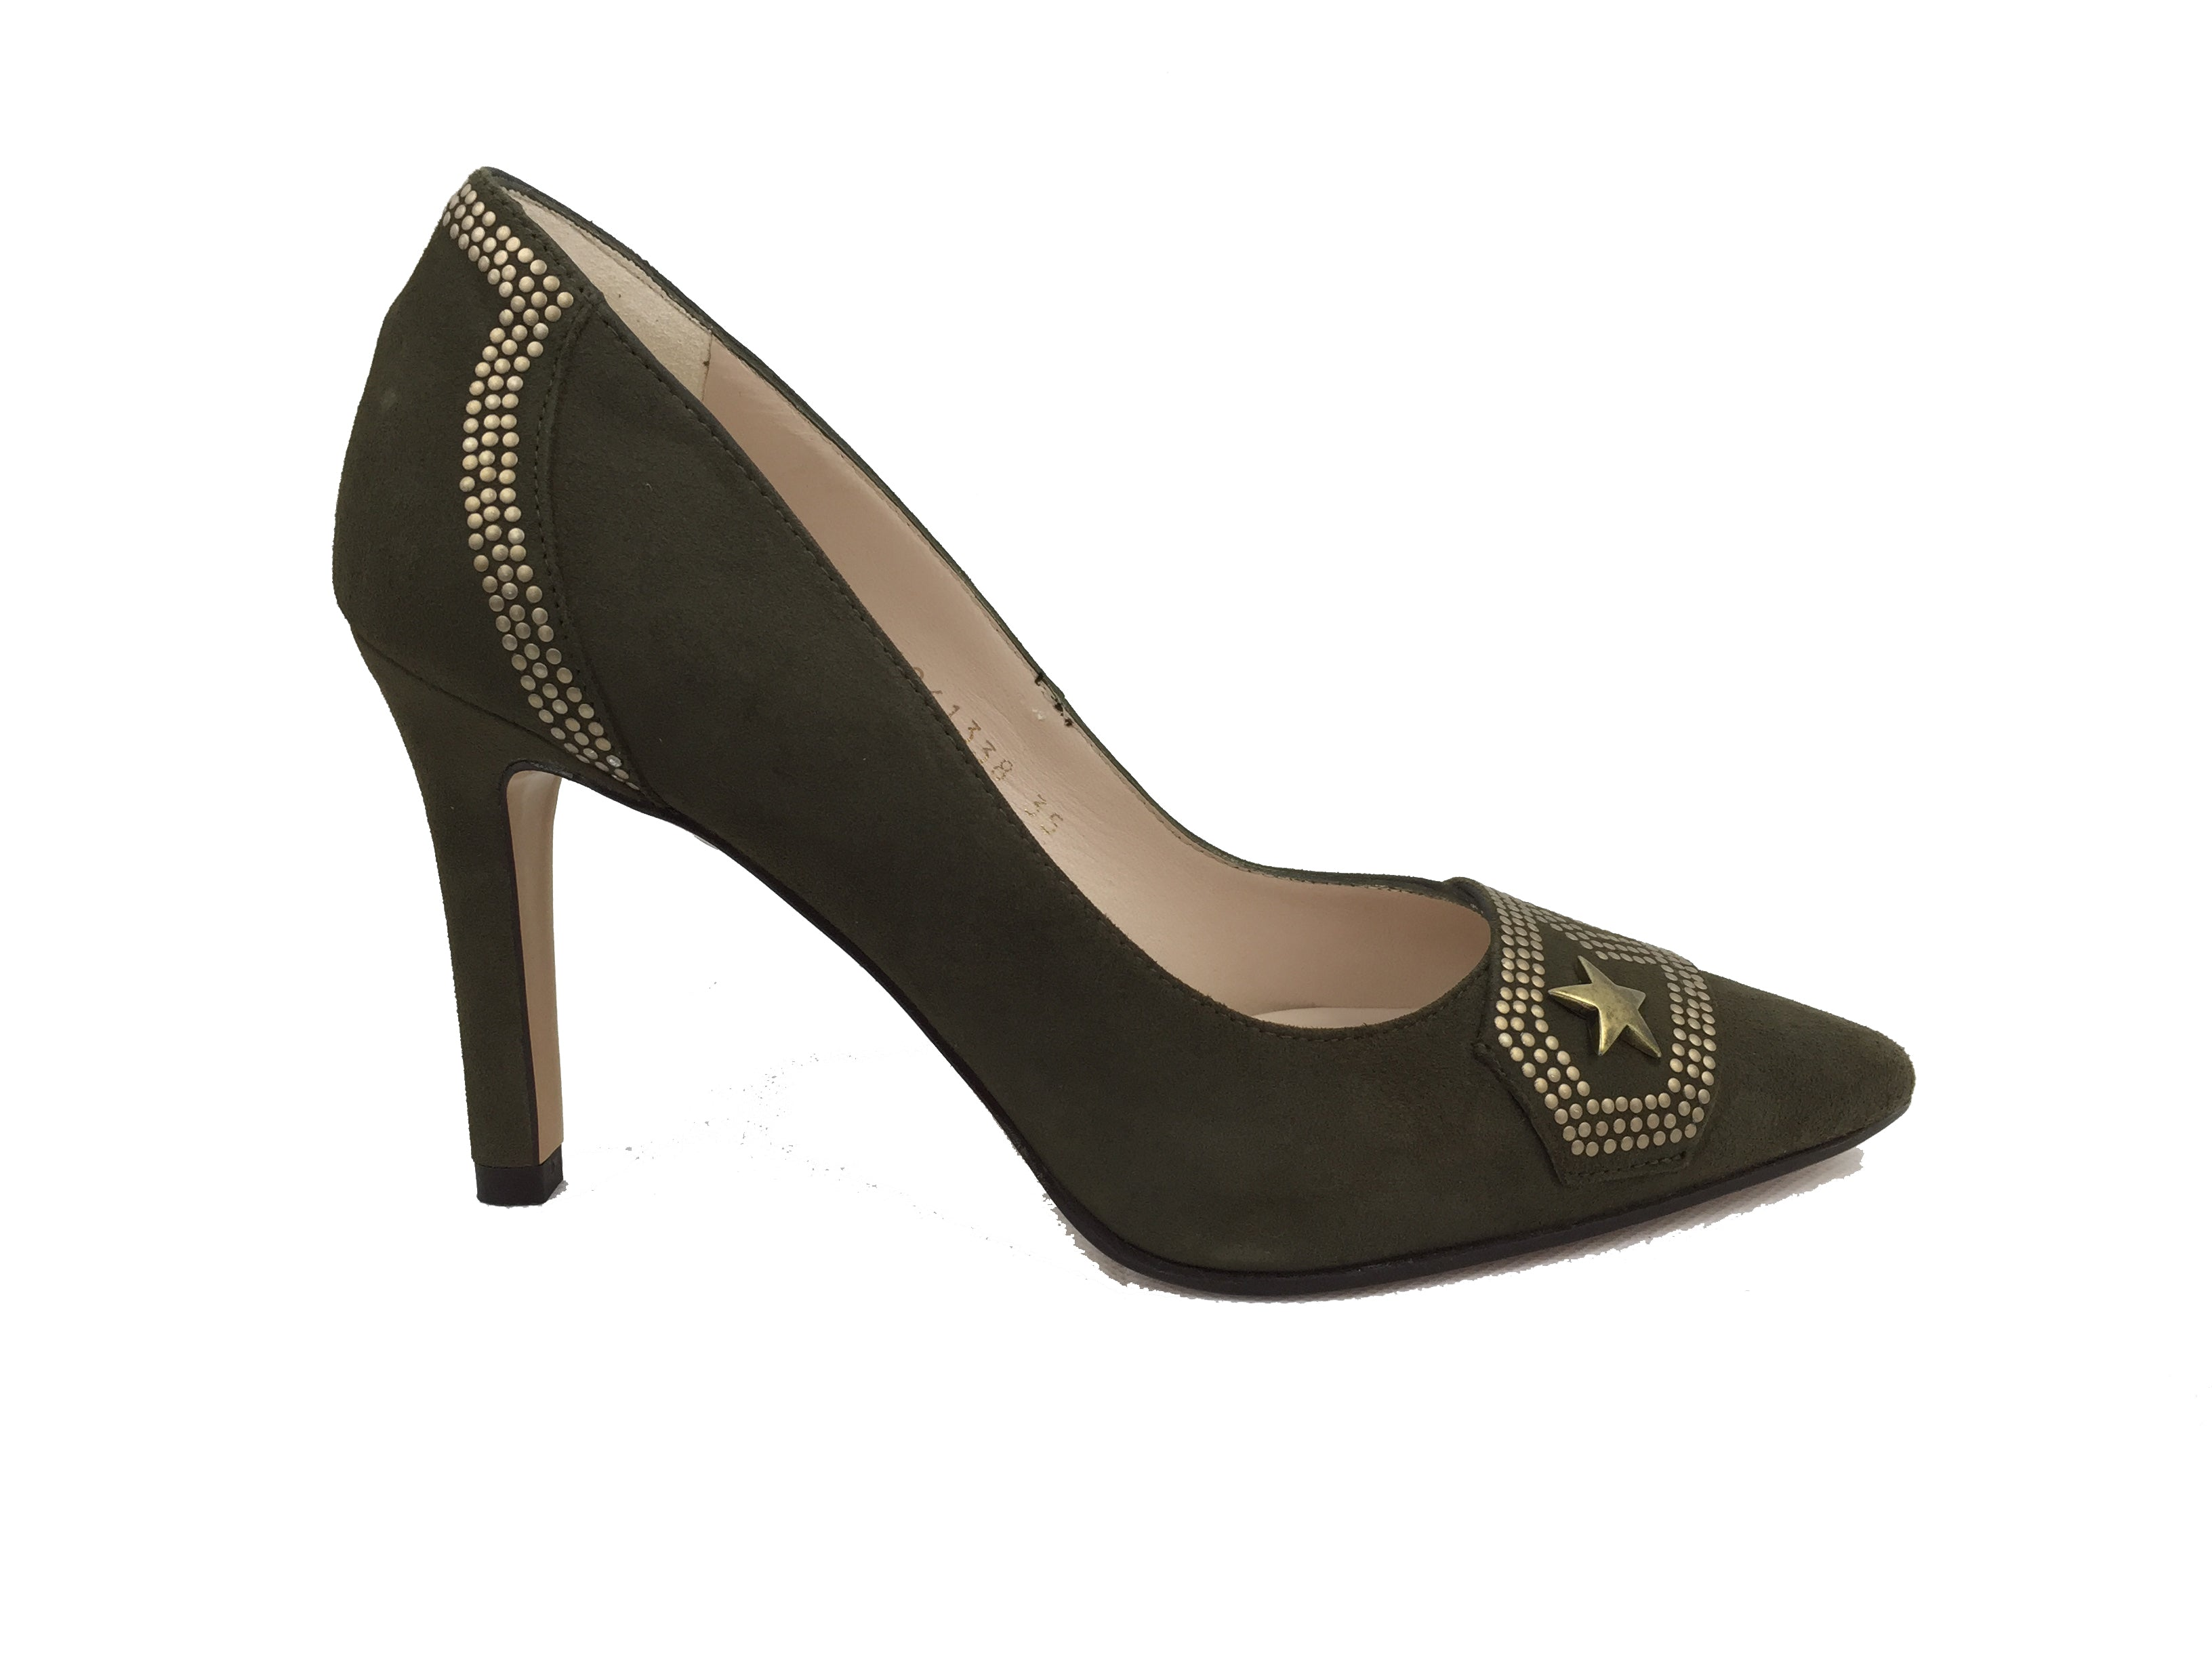 Khaki/olive green coloured suede Lodi court heel. Gold military style embellishments across back and front.